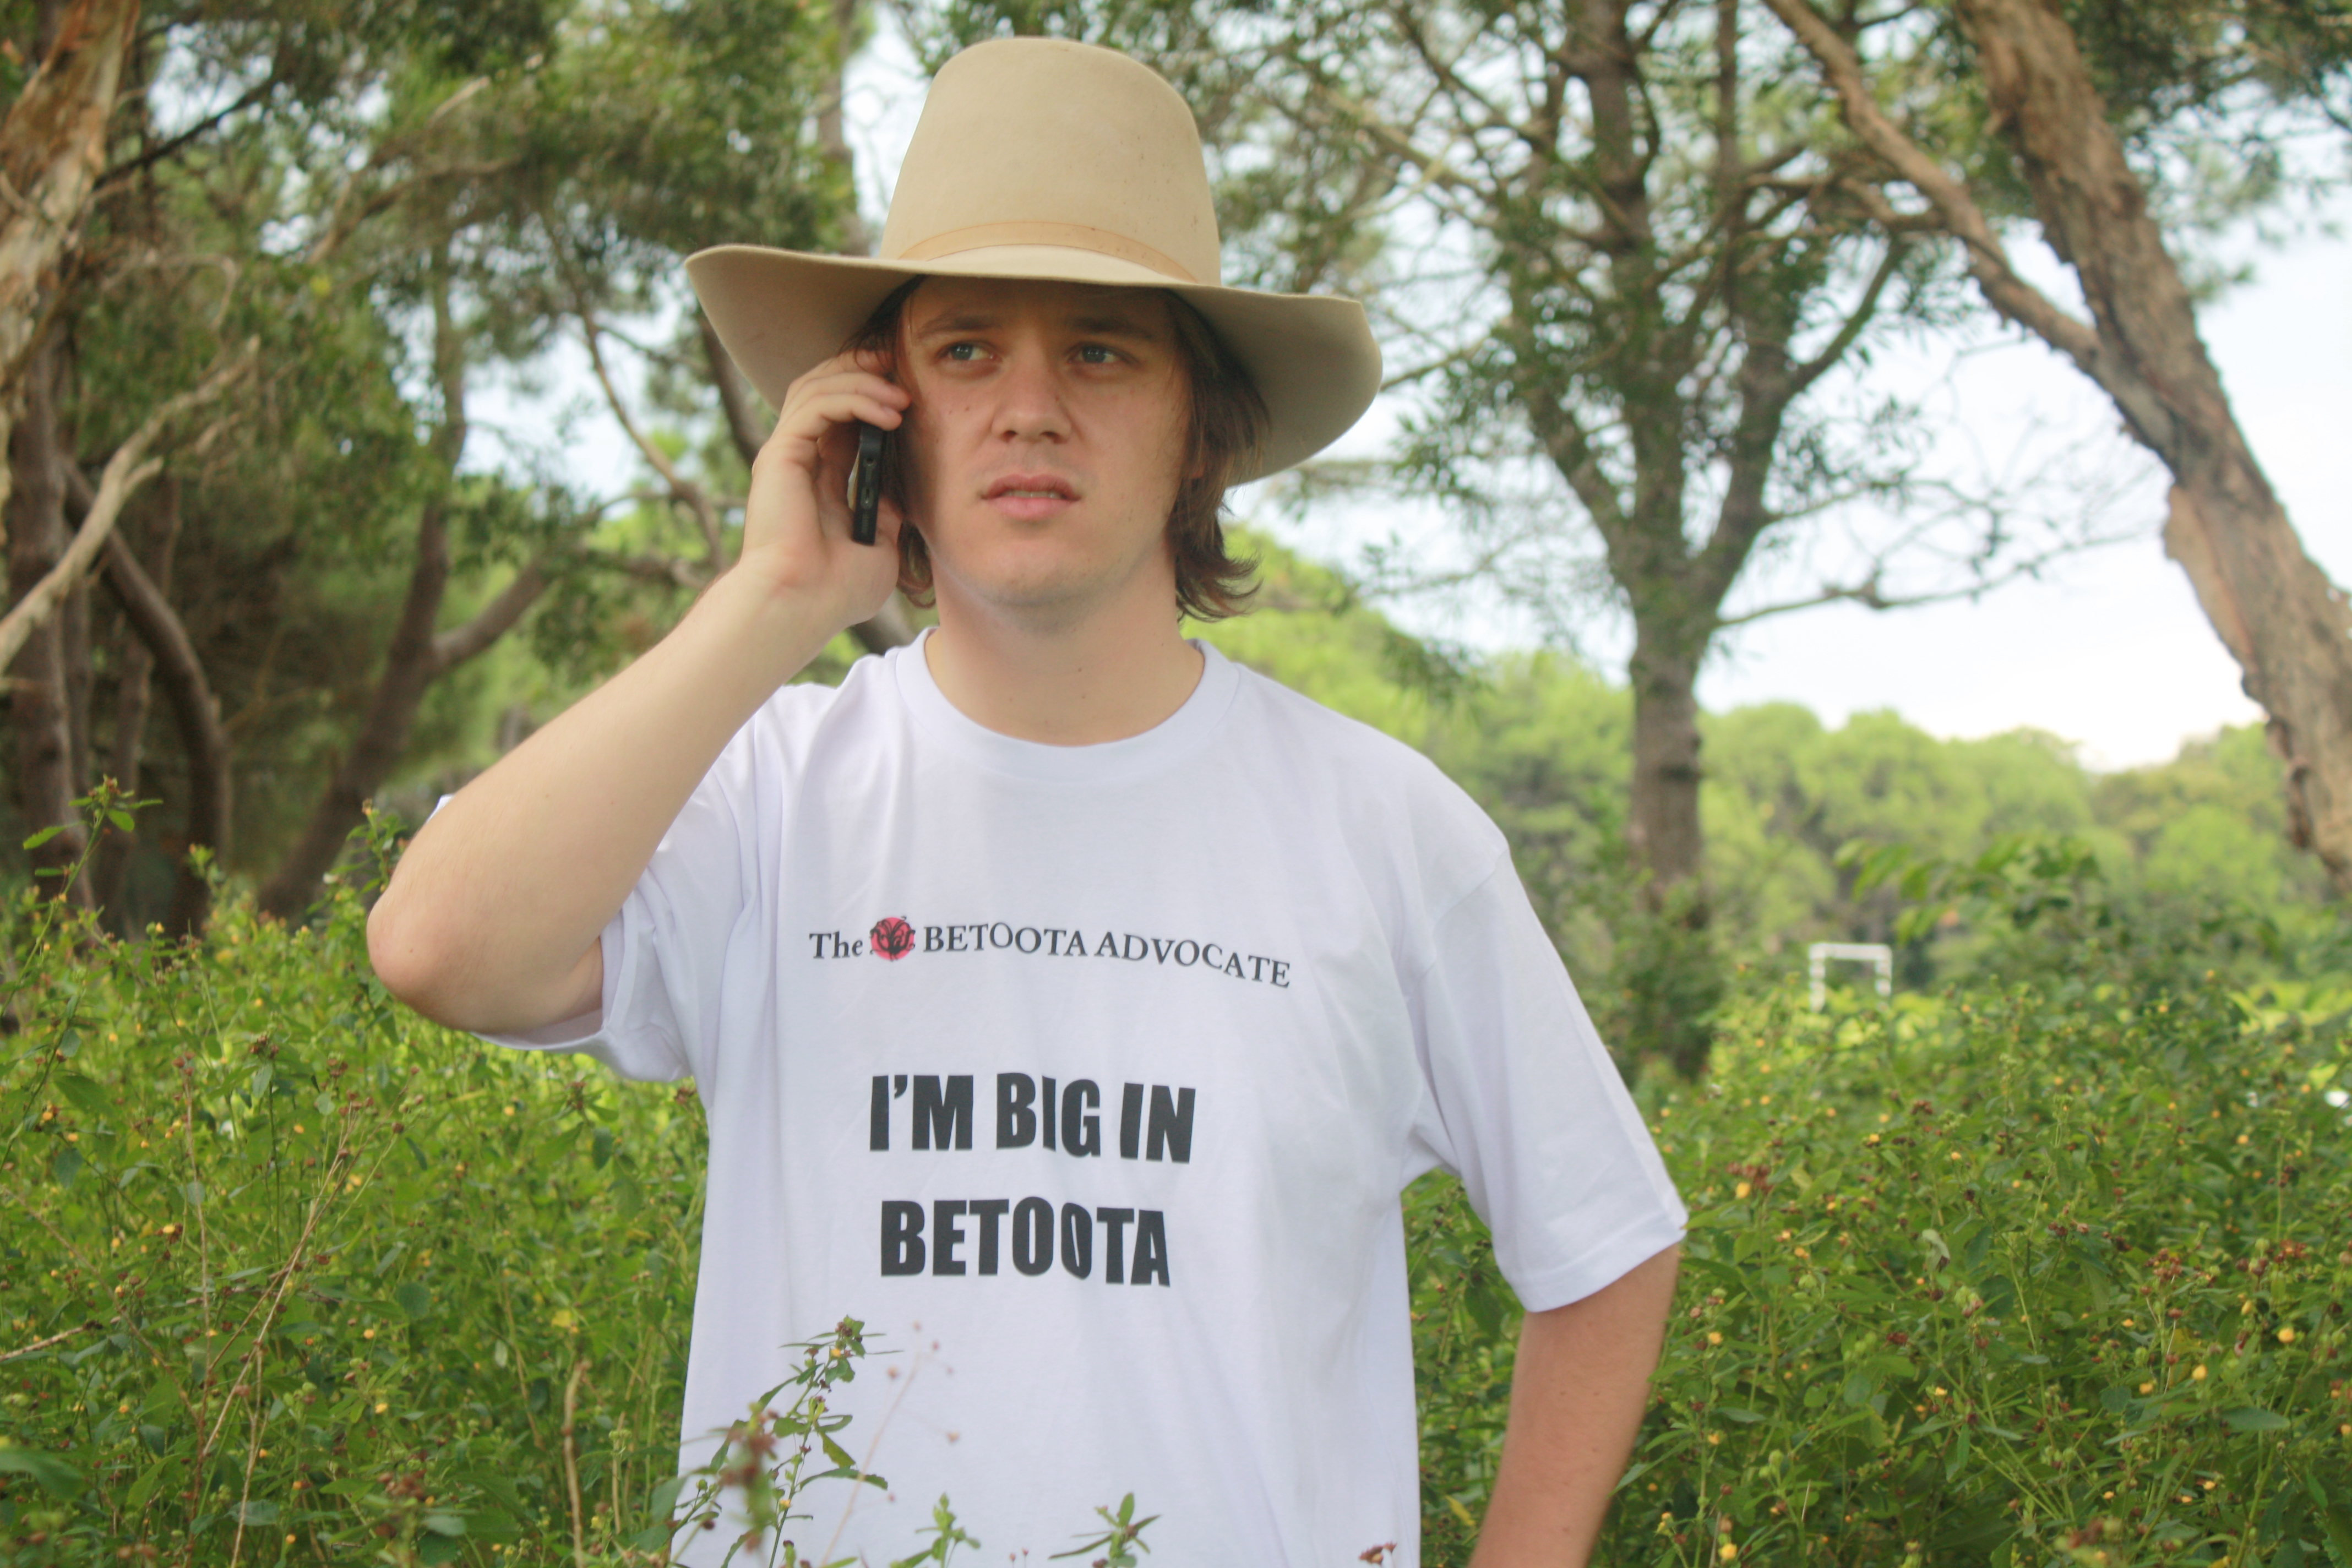 Errol Parker, editor-at-large and part owner of The Betoota Advocate